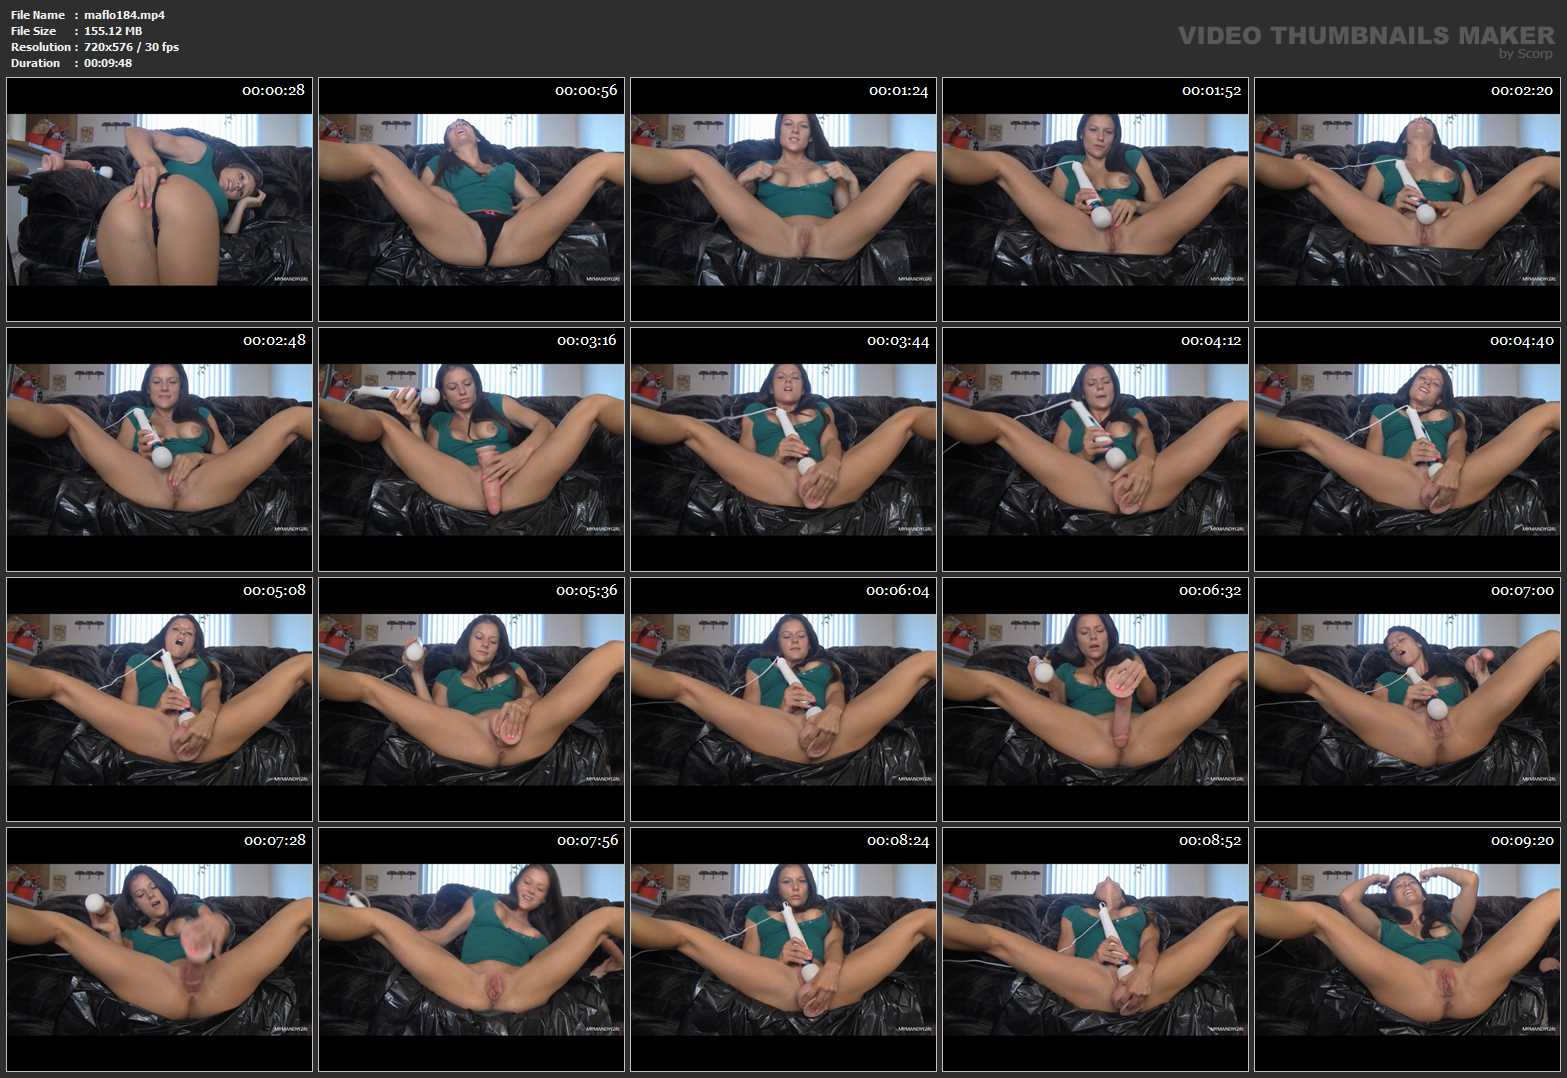 Mandy Flores In Scene: 1 More Please - MANDYFLORES - SD/576p/MP4